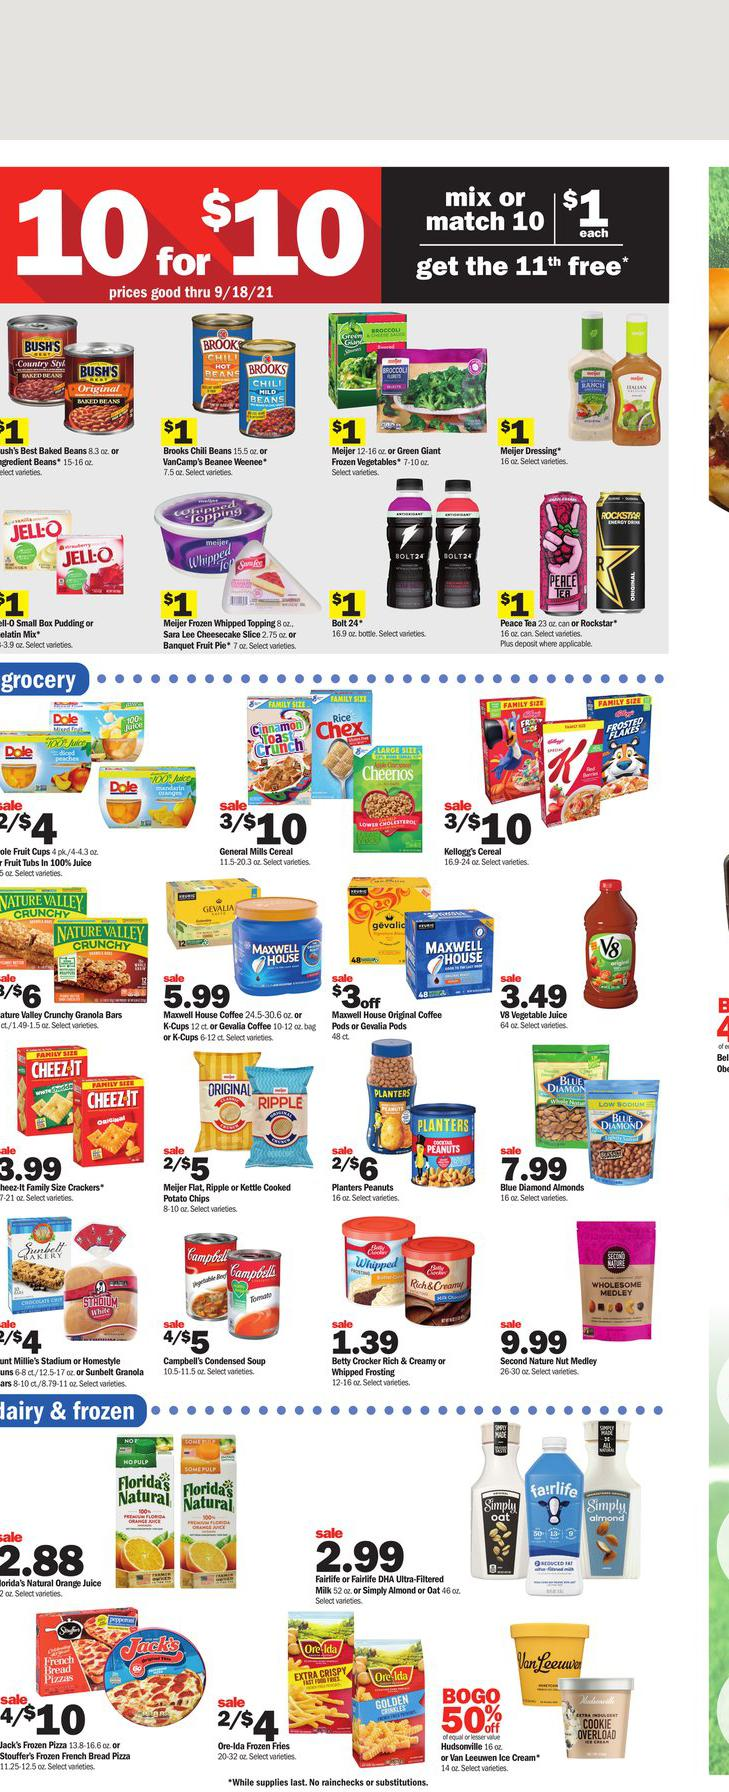 12.09.2021 Meijer ad 6. page